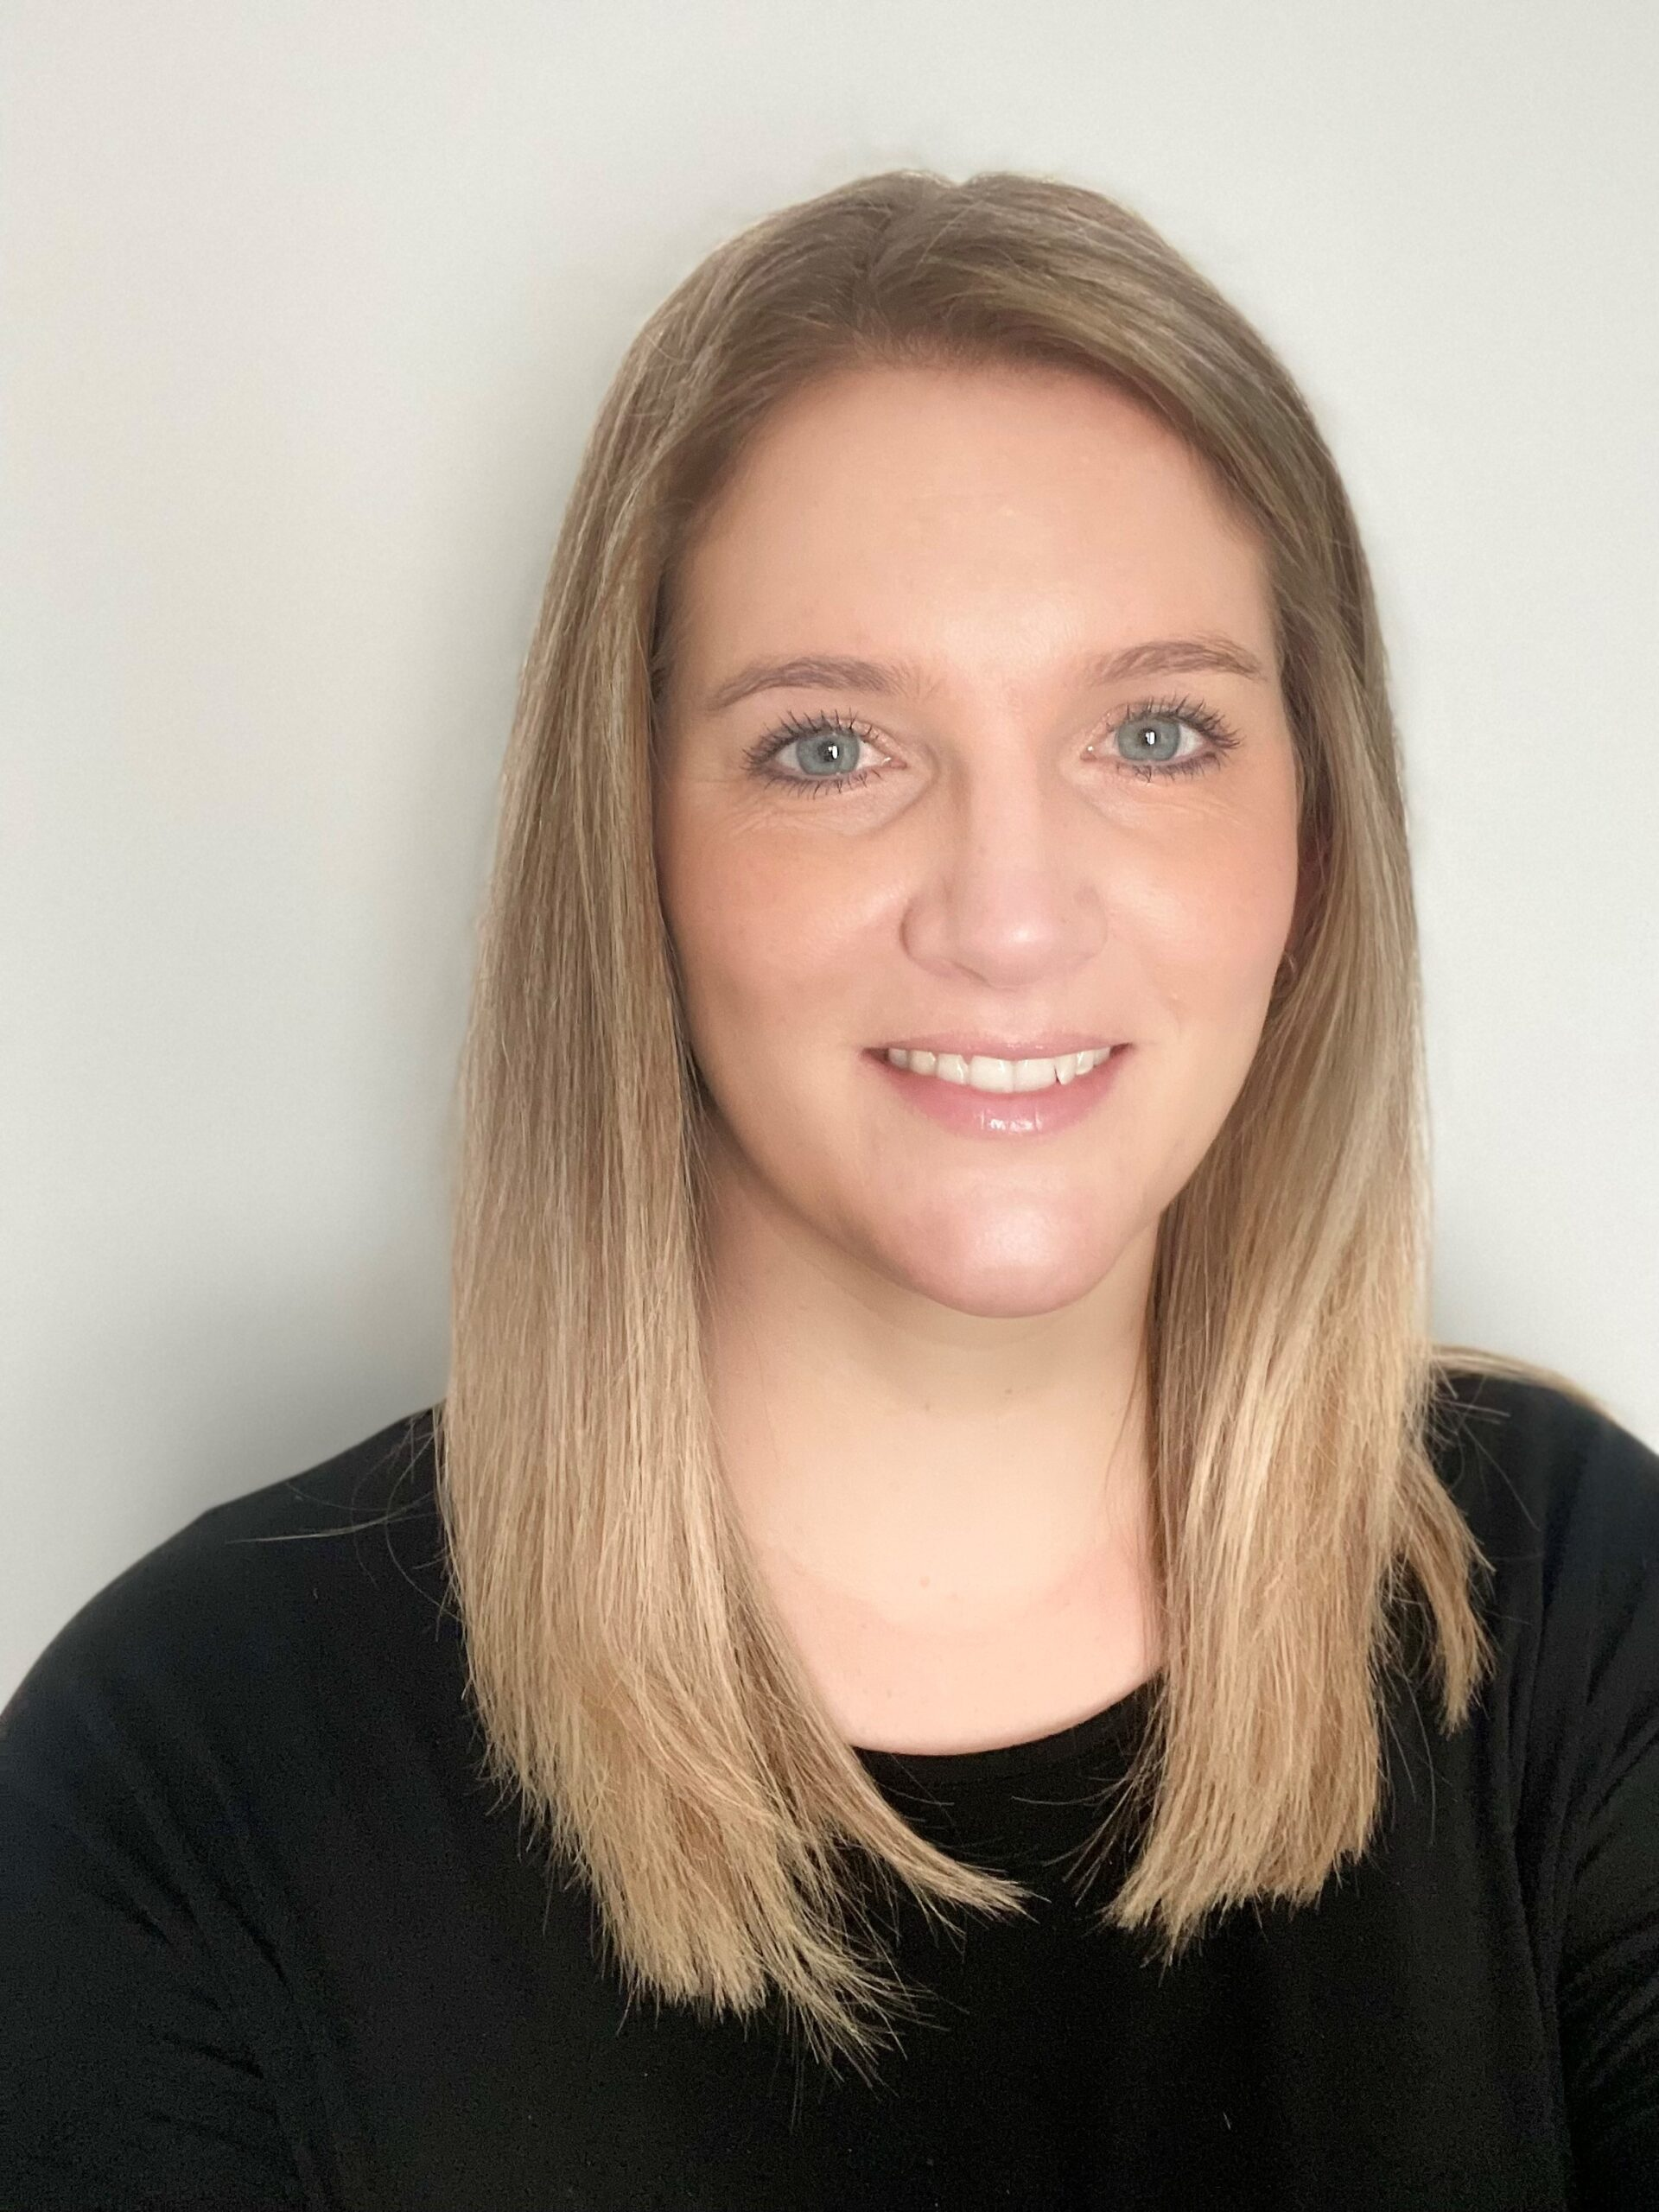 A professional picture of Lauren who smiles at the camera, she is happy to work at therapy pro